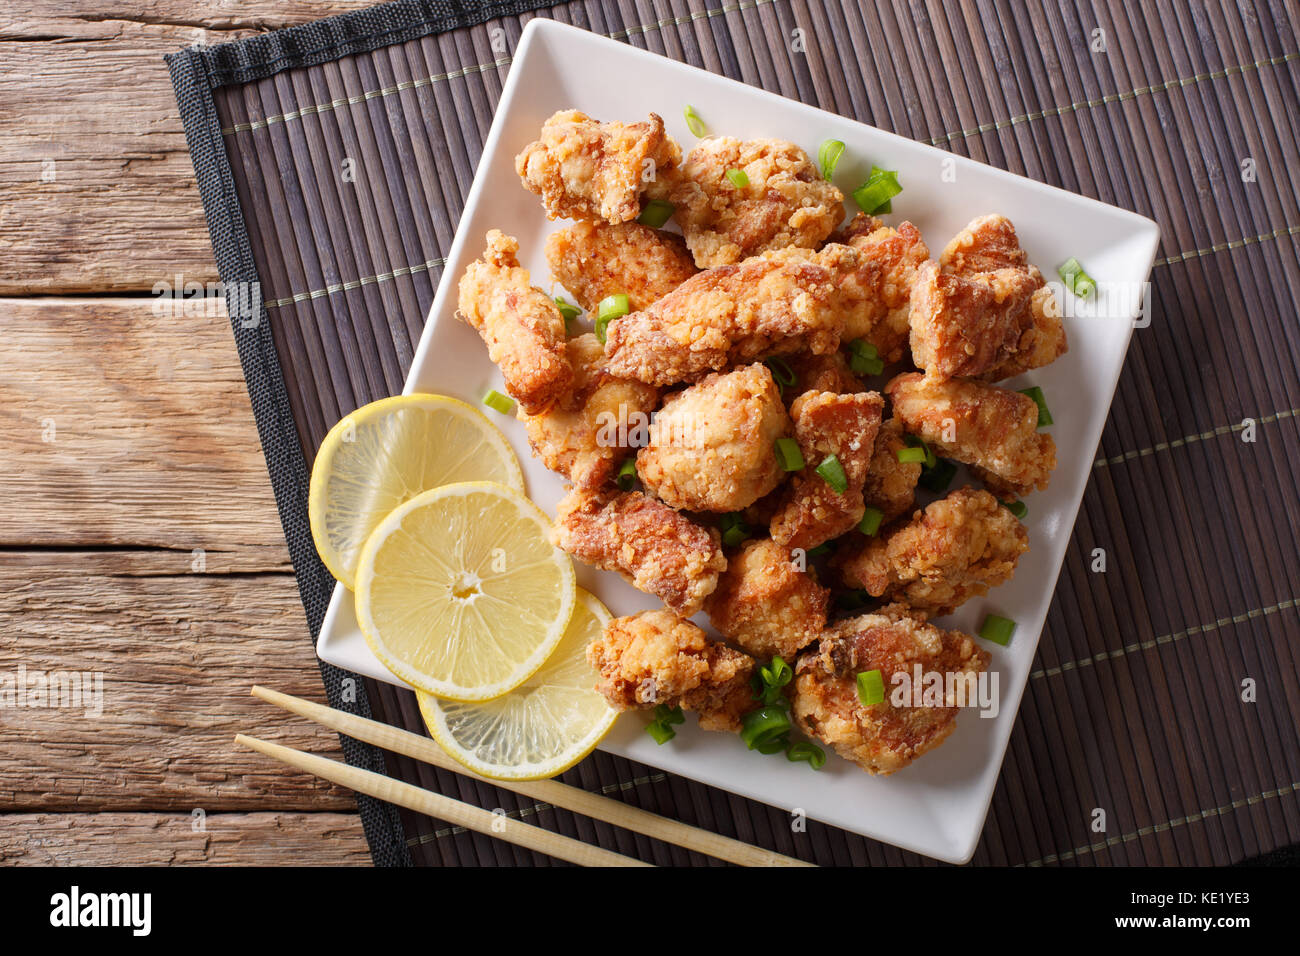 Portion fried chicken karaage with lemon and onion close-up on a plate on the table. Horizontal top view from above - Stock Image